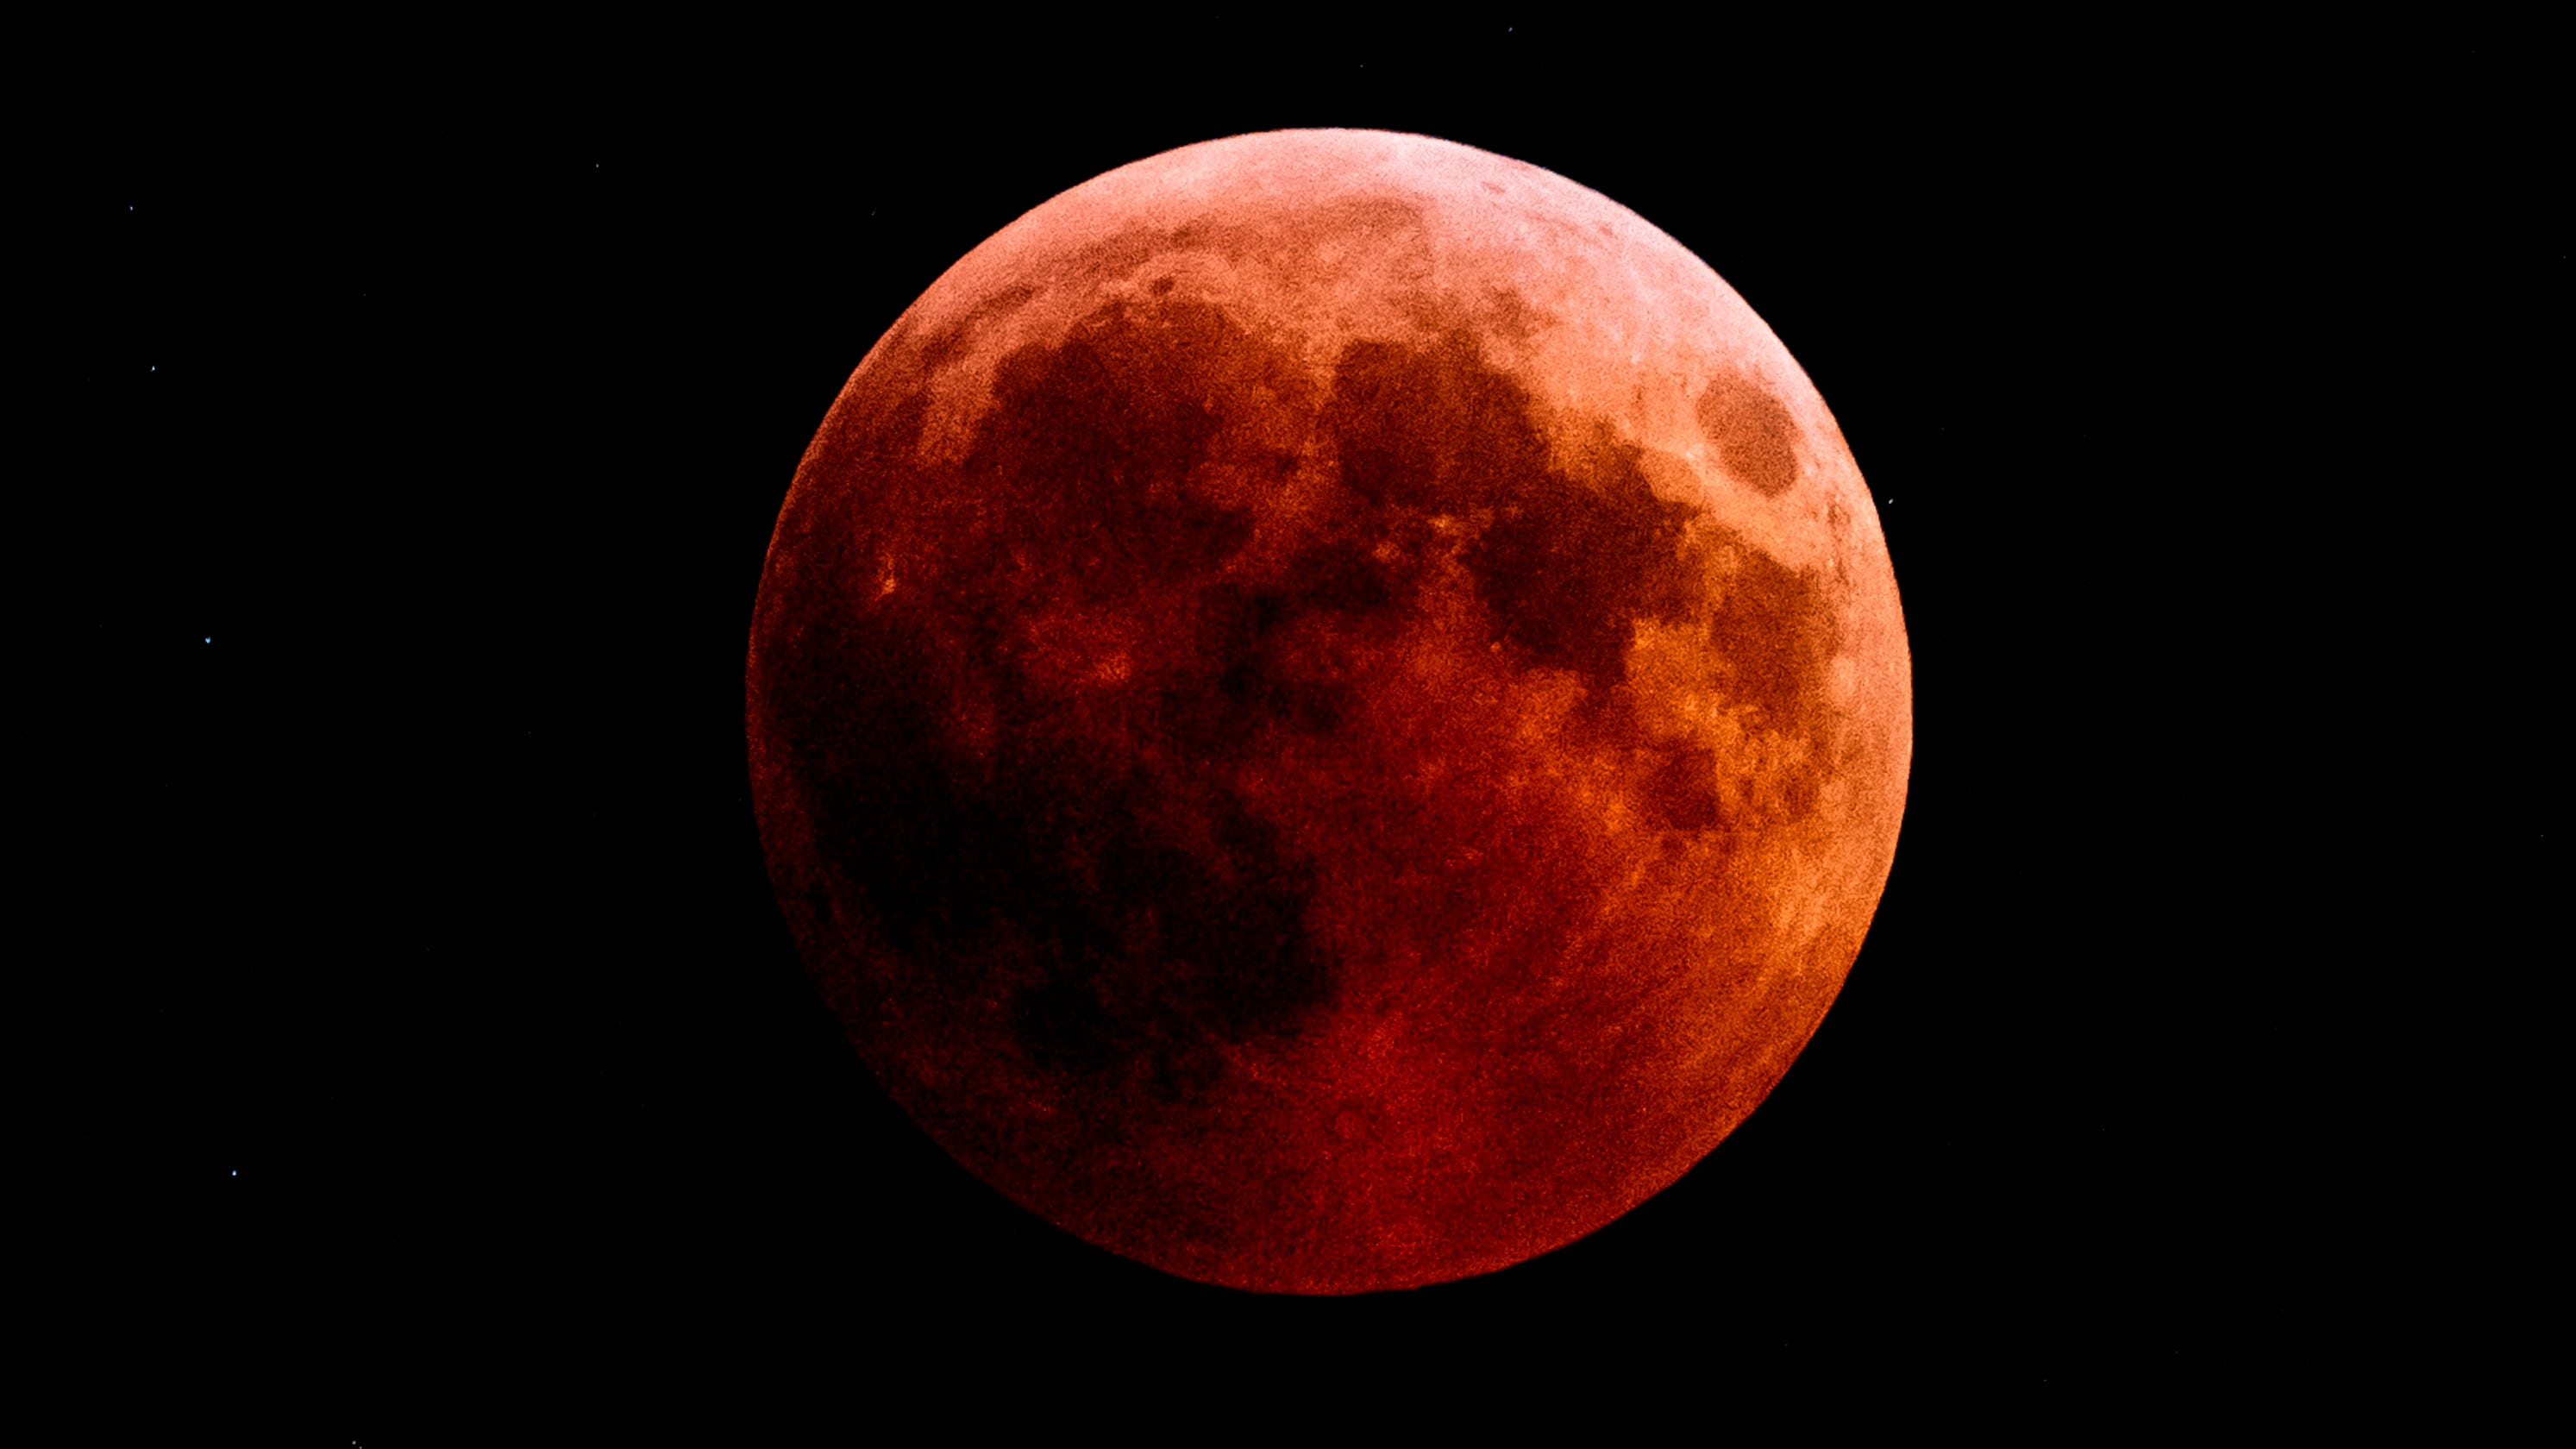 wolf blood moon january 2019 florida - photo #39